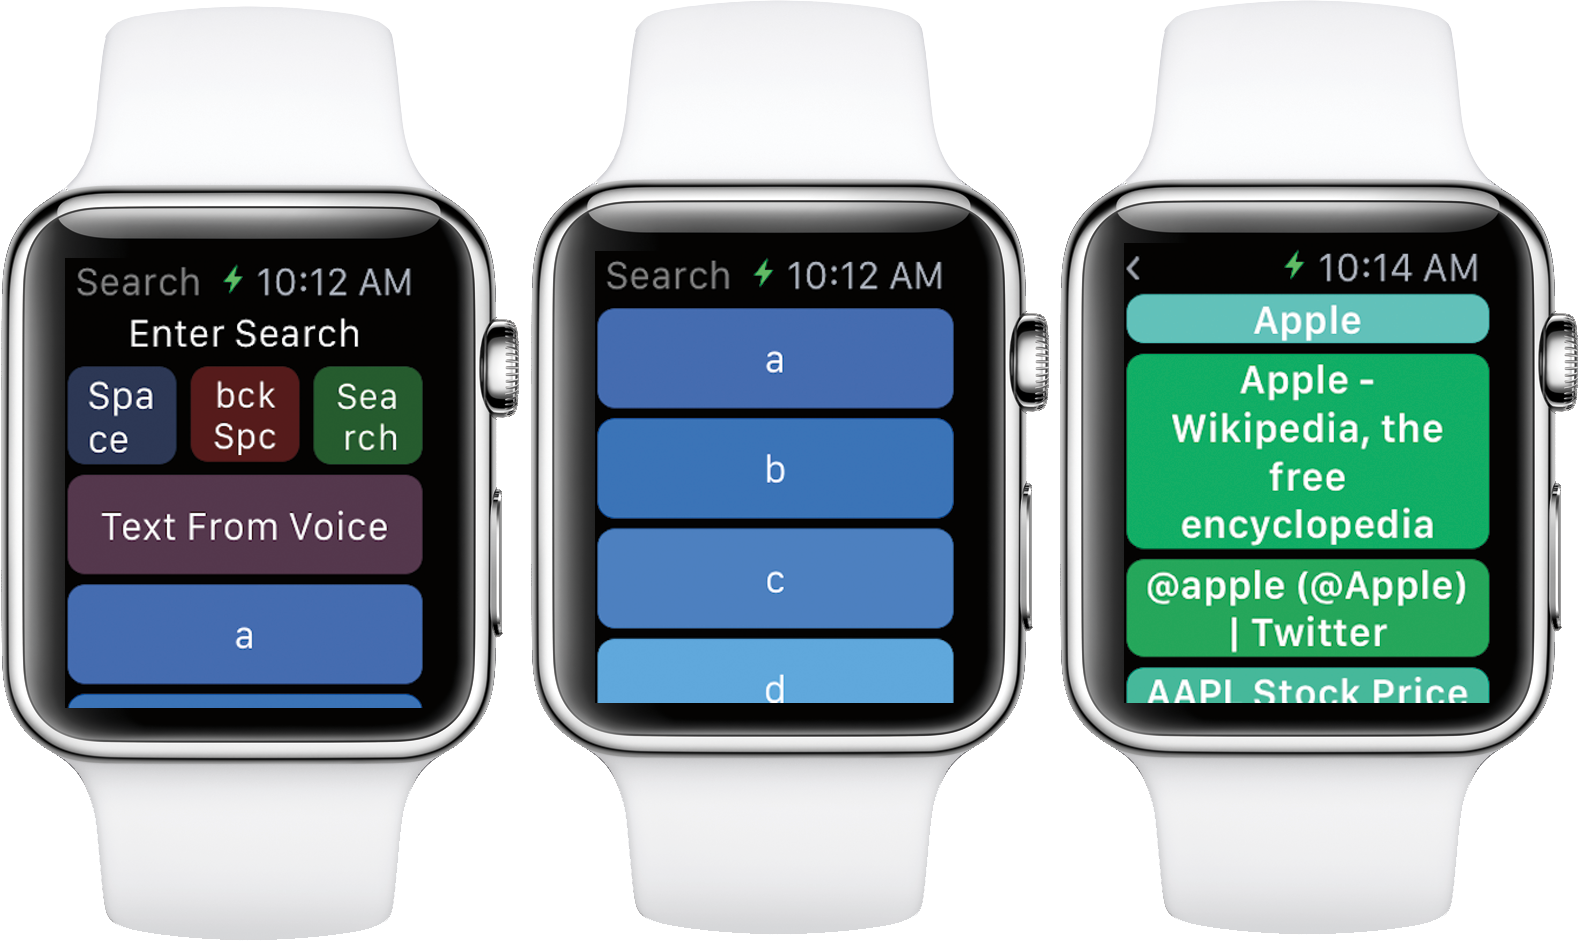 WatchWeb 1.0 for iOS Apple Watch screenshot 002